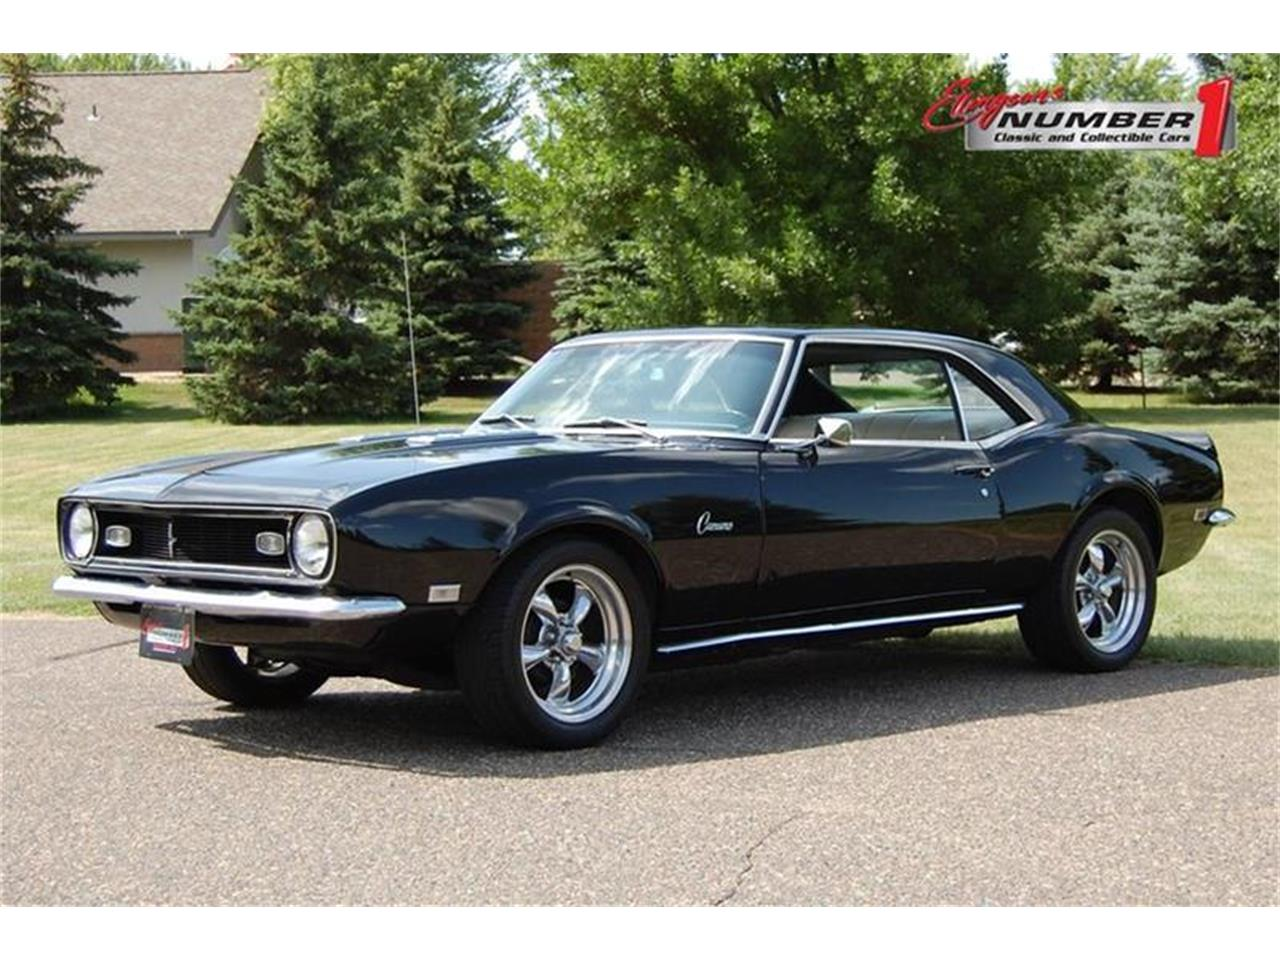 Classic Cars For Sale Mn >> 1968 Chevrolet Camaro For Sale In Rogers Mn